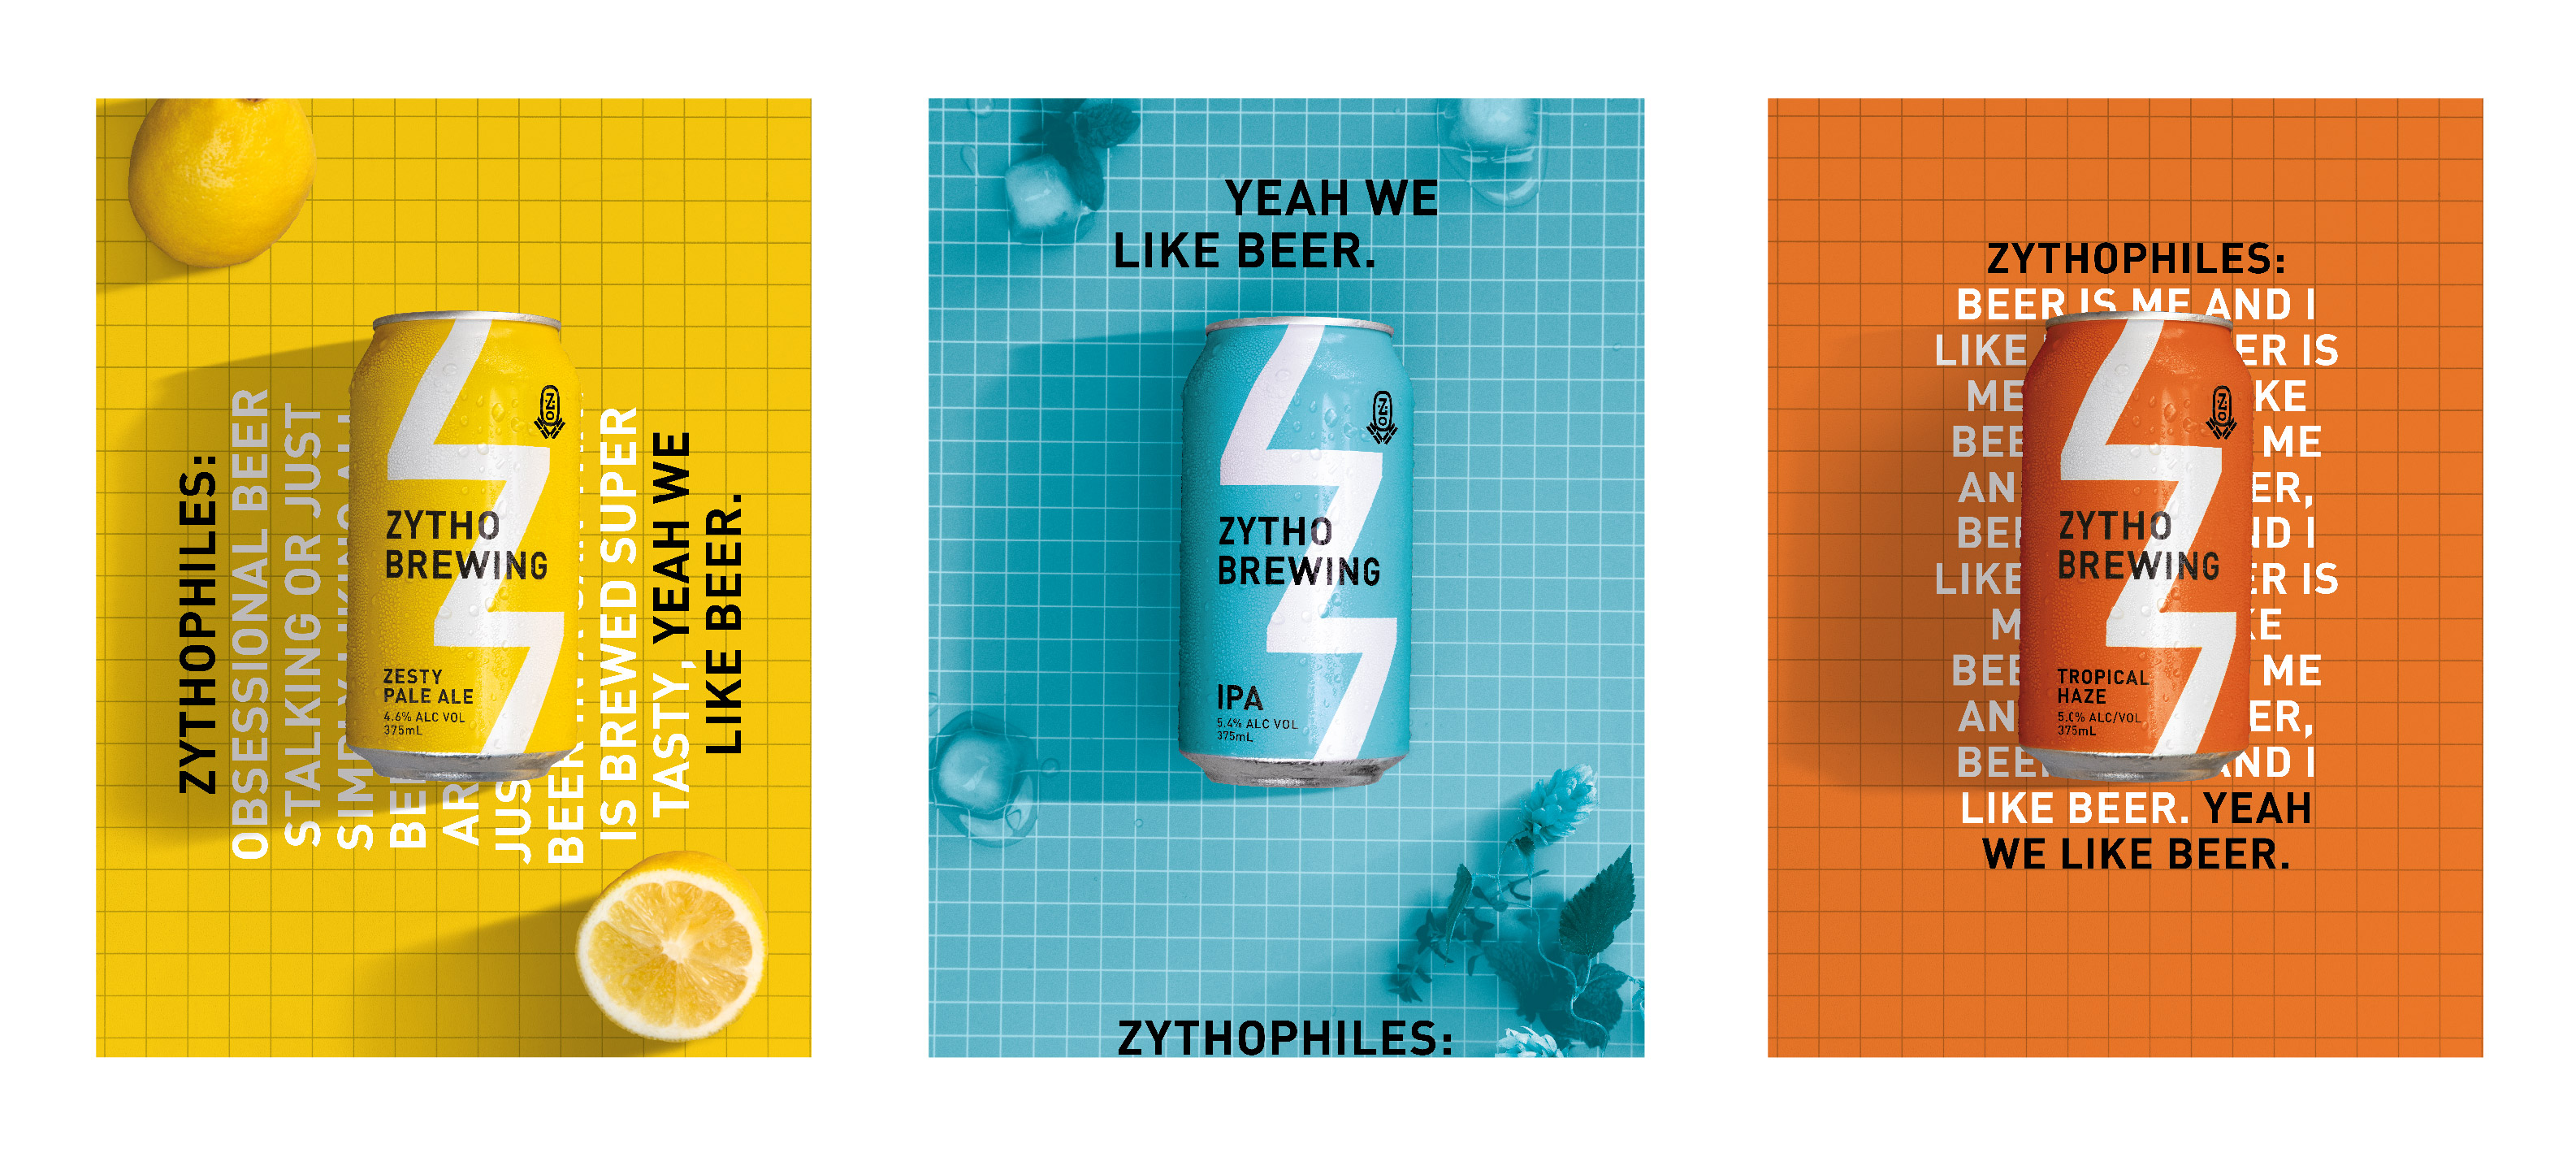 New Old Name For Beer Lovers, Zytho Brewing by Creative Platform